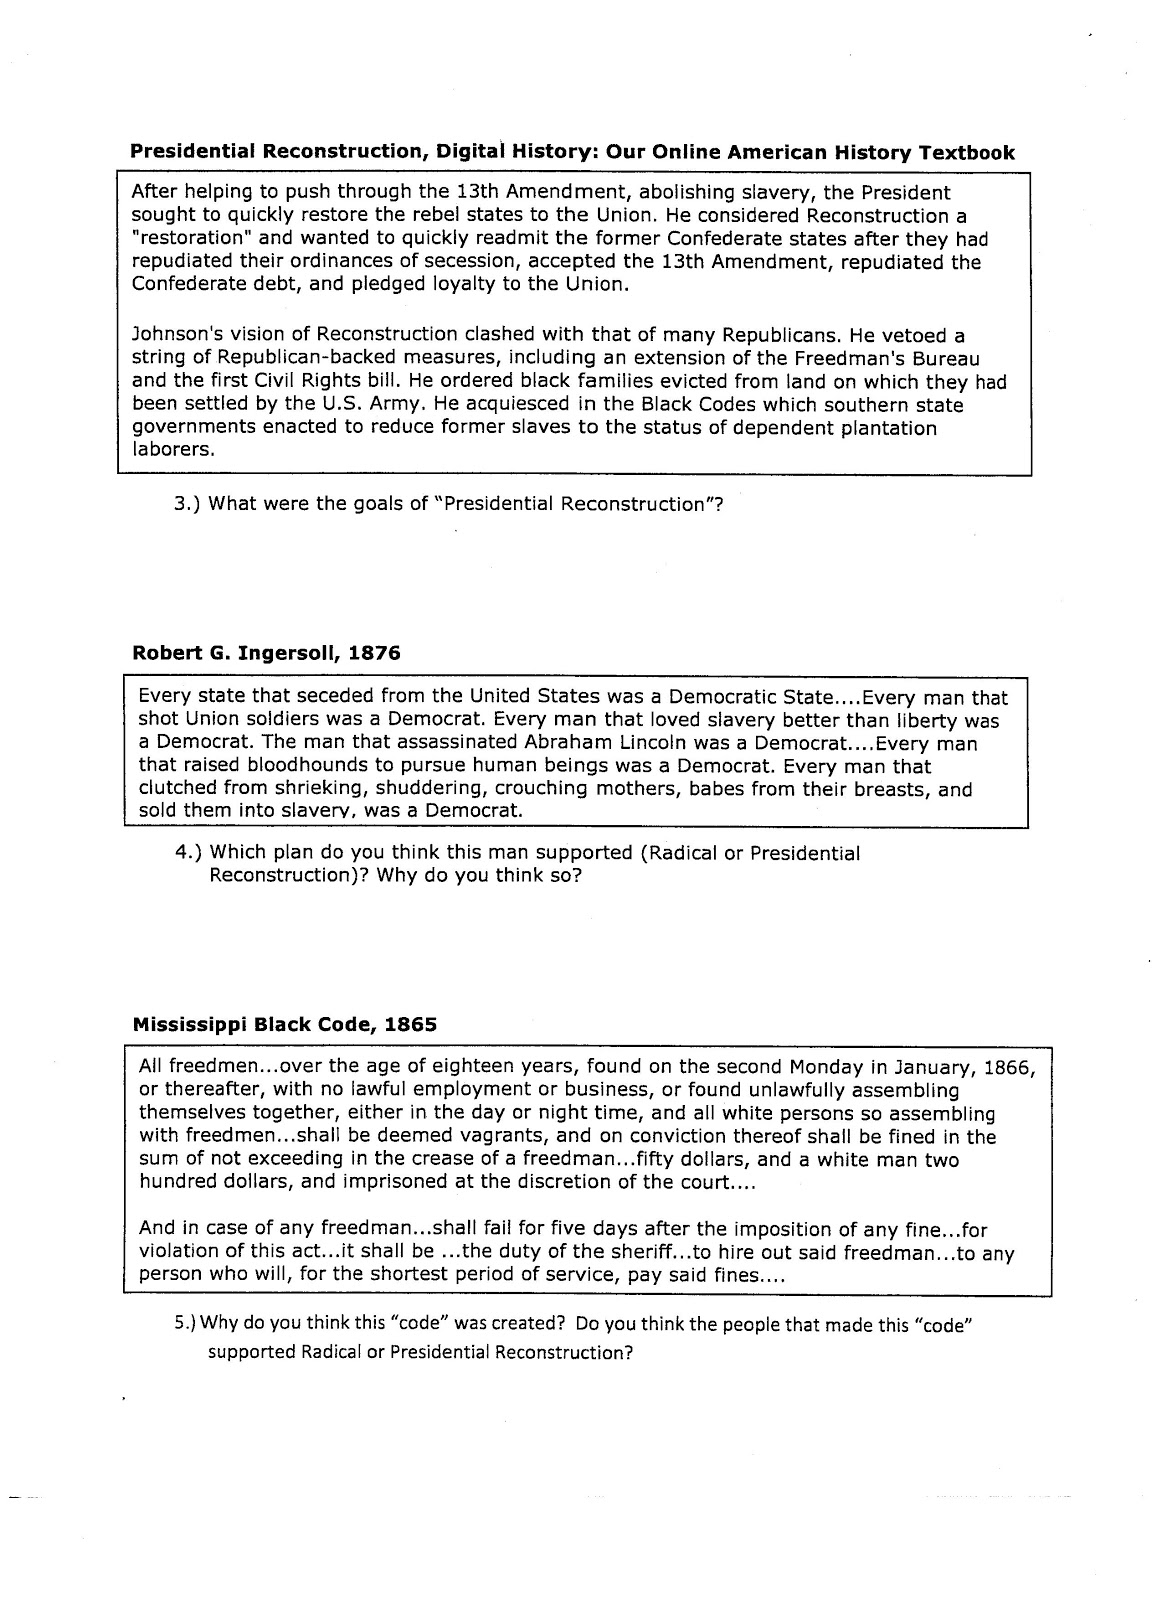 global history thematic essay outline Narrative essay order global regents thematic essay help how to write global history regents thematic essay thematic essay outline for global.